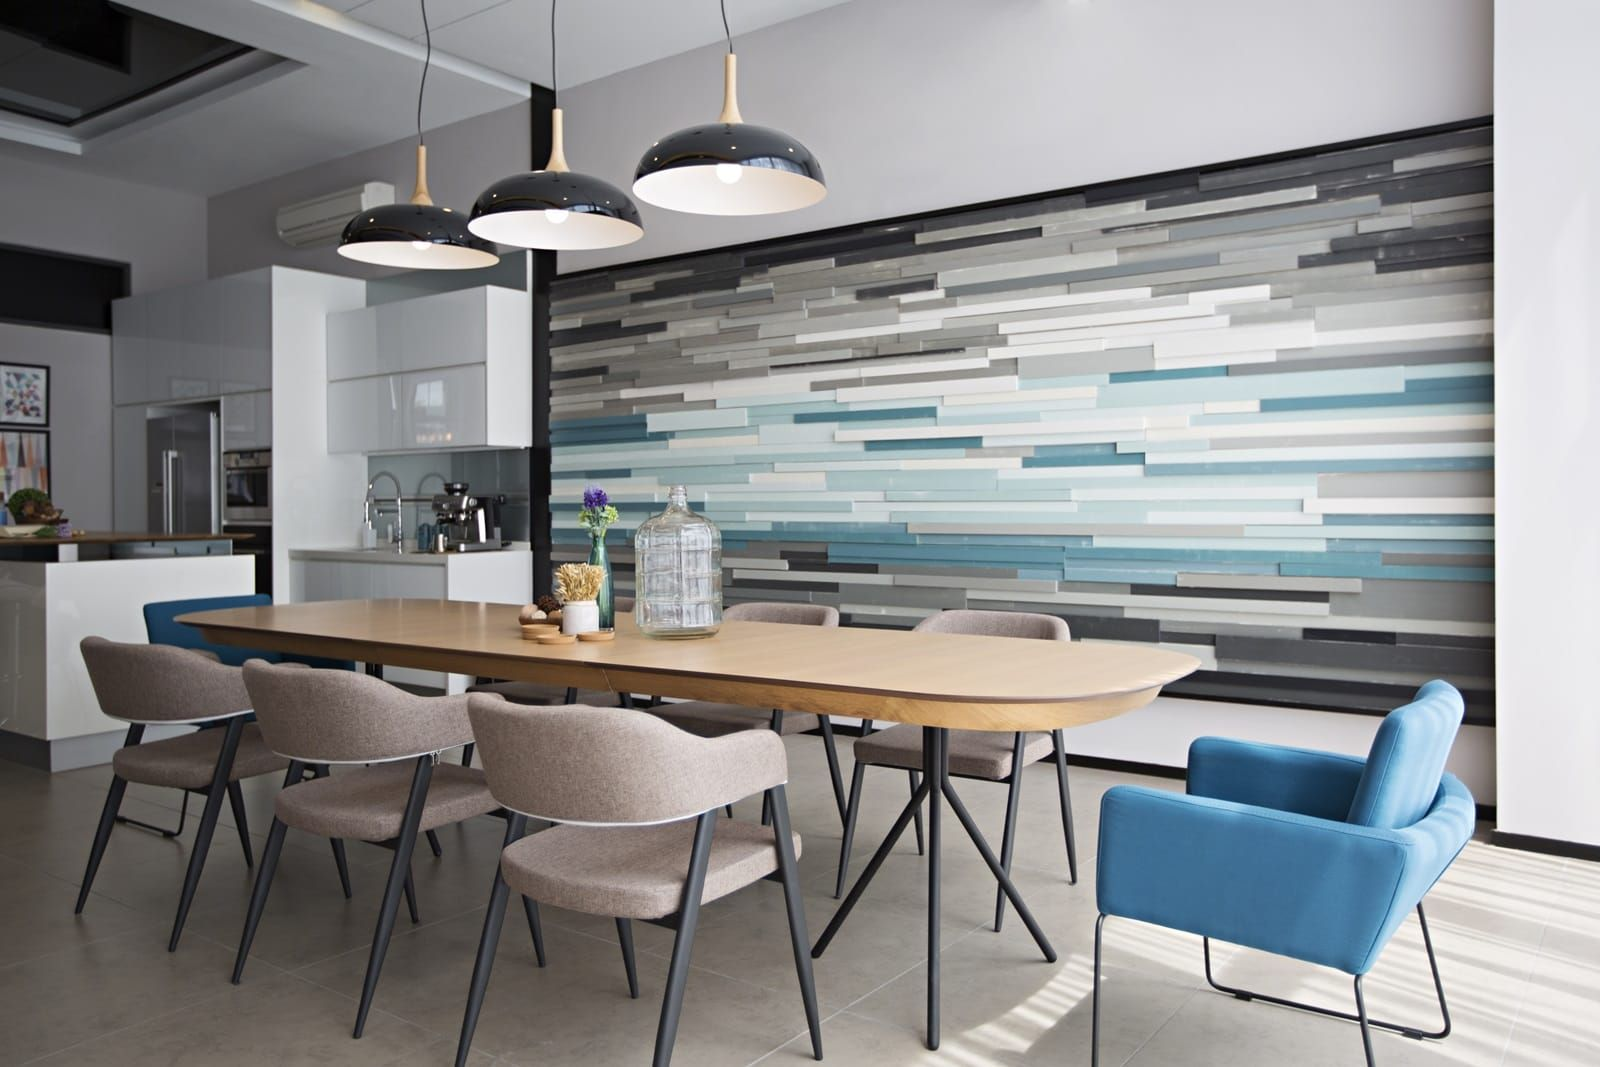 Unique Textured Feature Wall Adds A Soothing Design Element To The Dining Area